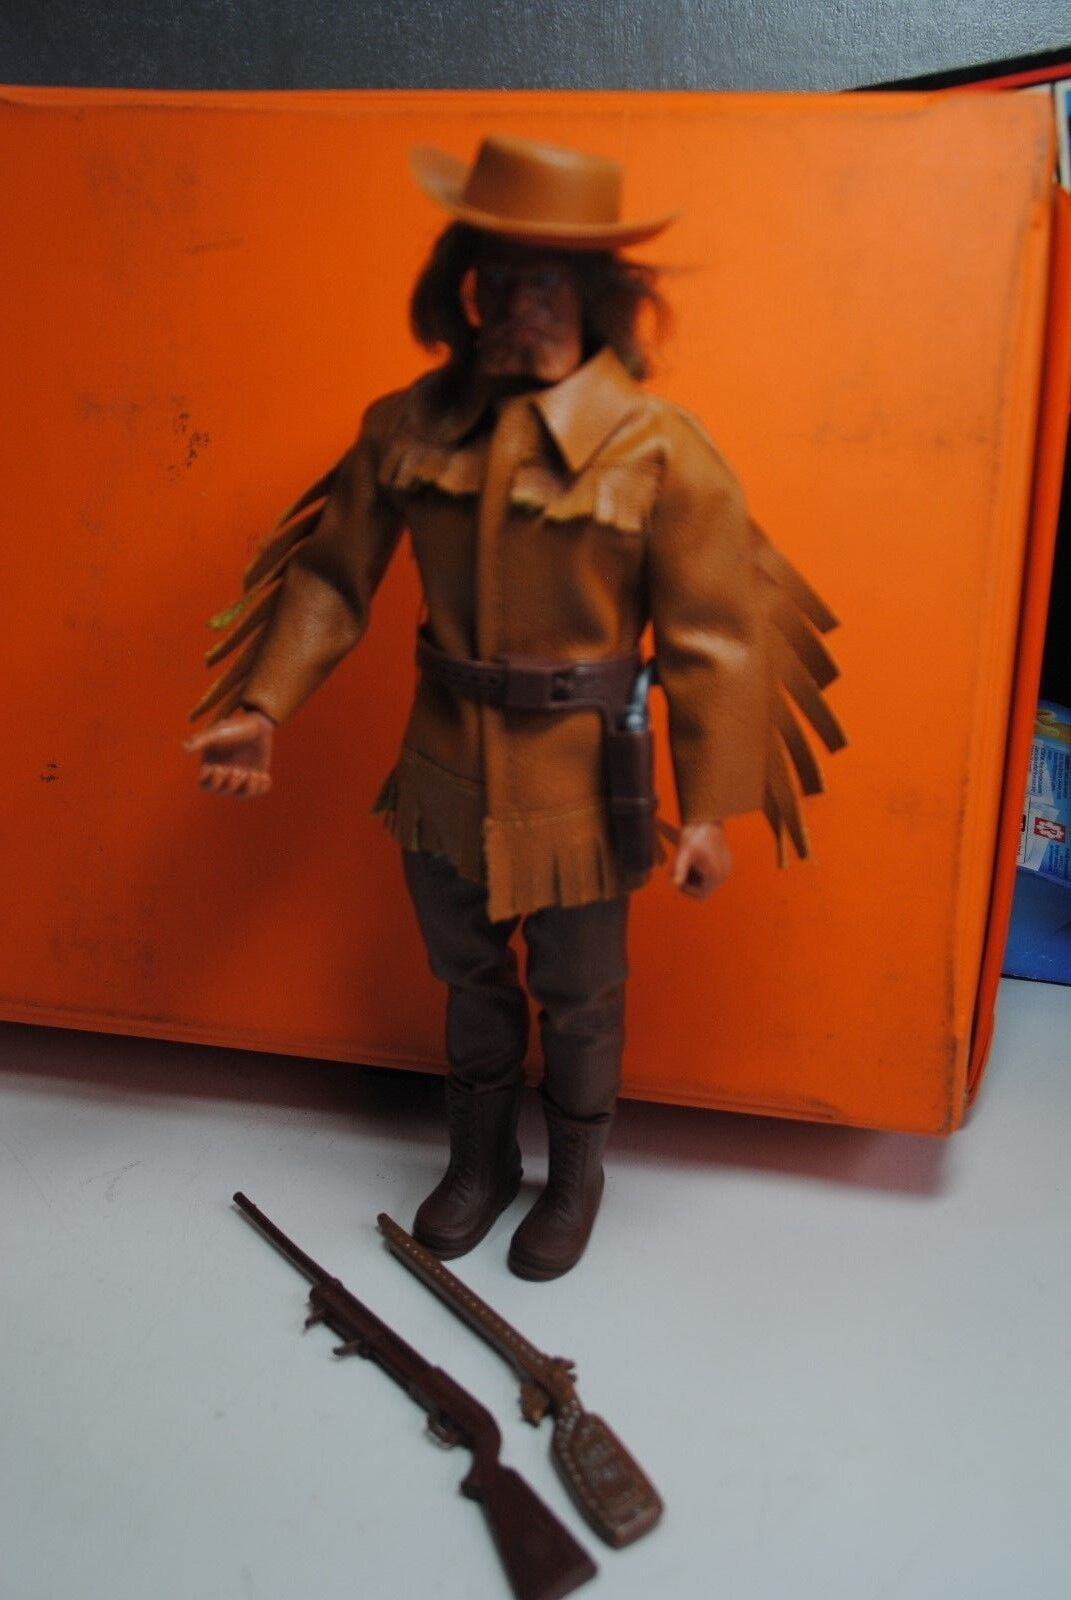 BIG BIG BIG JIM MATTEL KARL MAY  OLD SURE  HAND   IN WESTERN OUTFIT  NICE 892e7c